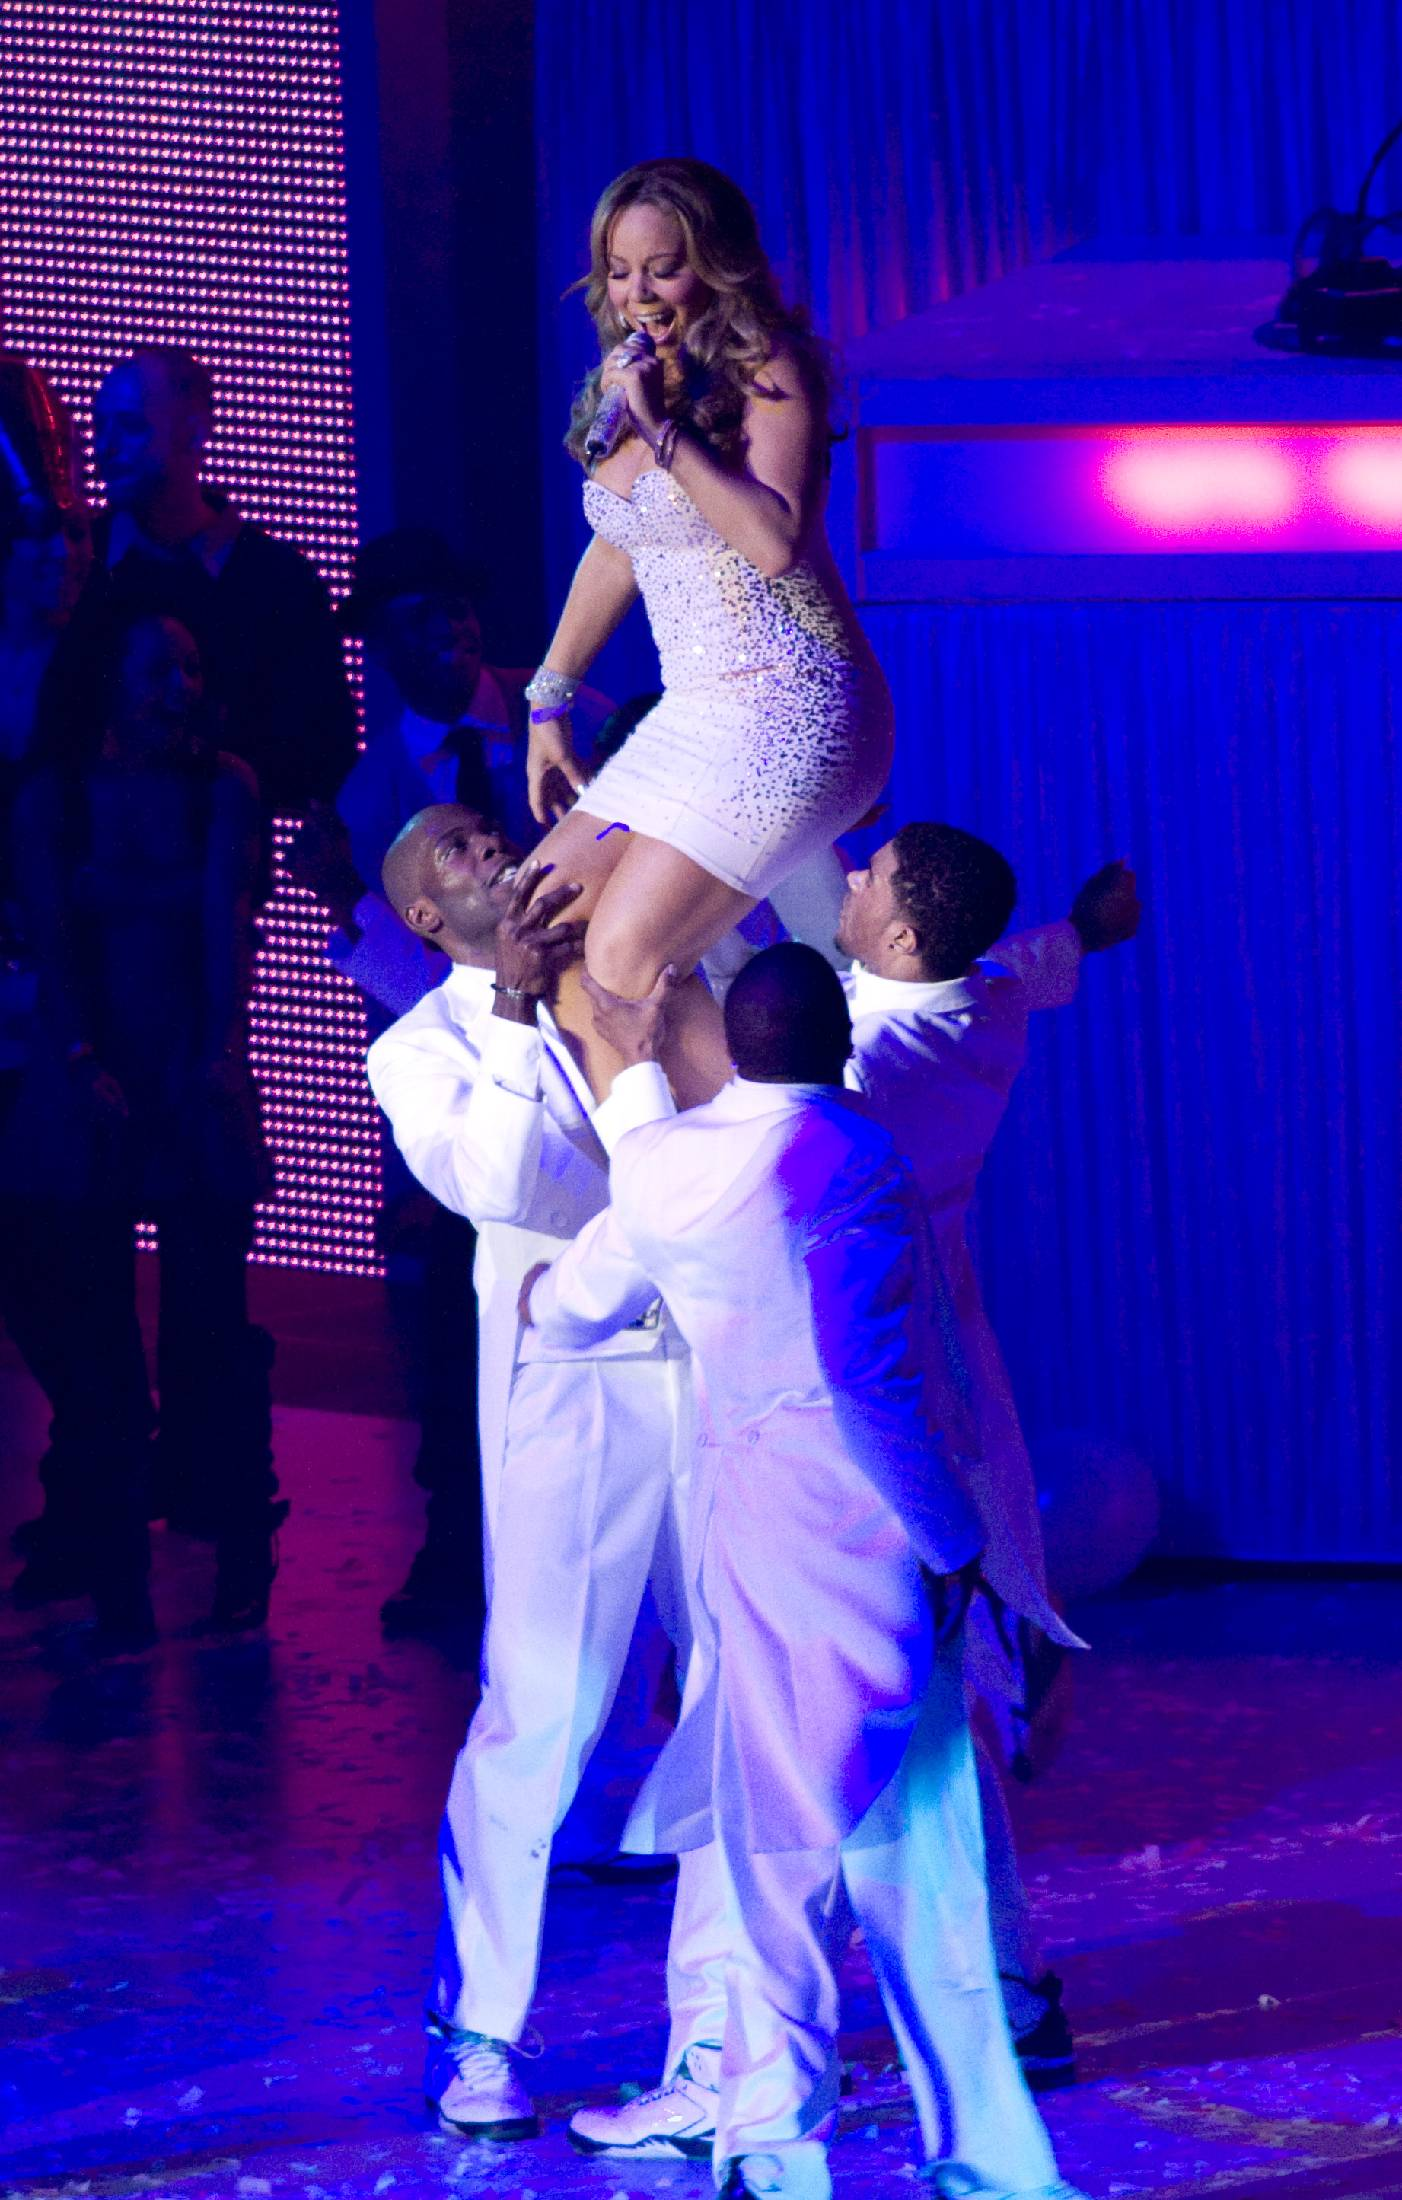 53573_Mariah_Carey_performs_at_Madison_Square_Garden_in_New_York_City-27_122_561lo.jpg